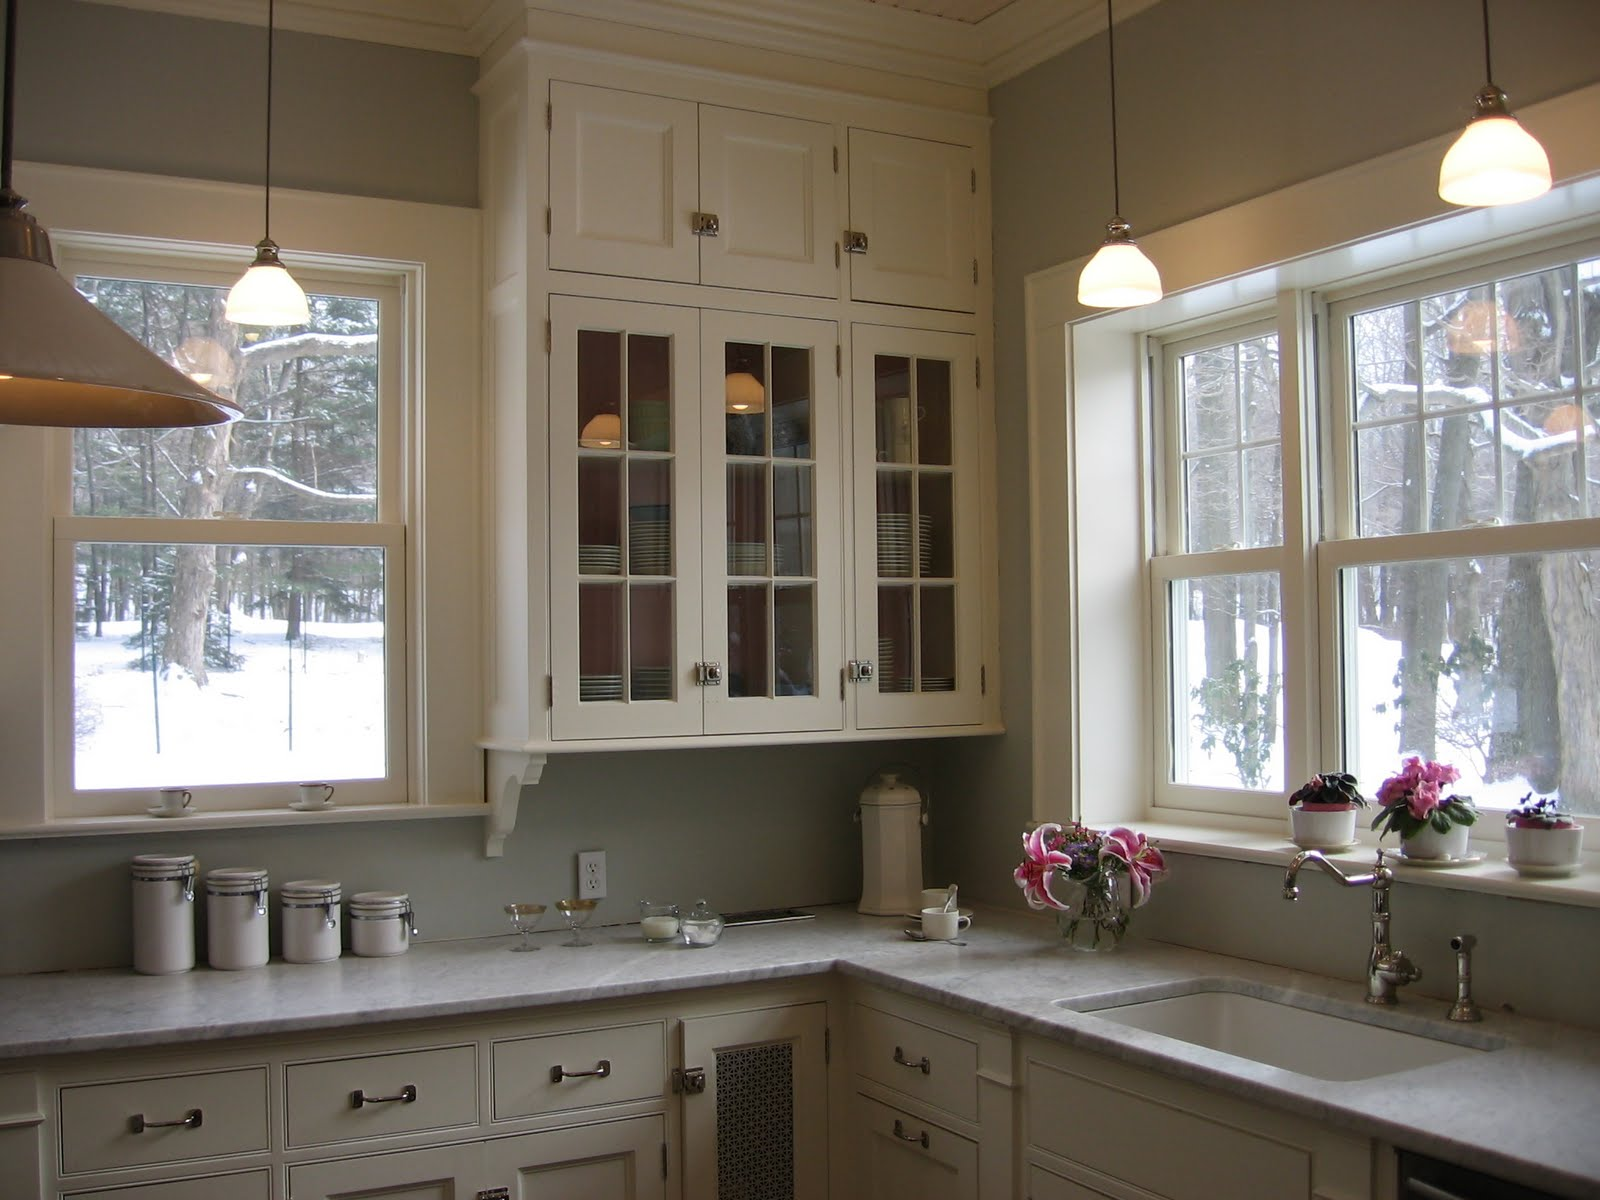 Old fashioned kitchen cabinets for 1930s style kitchen design